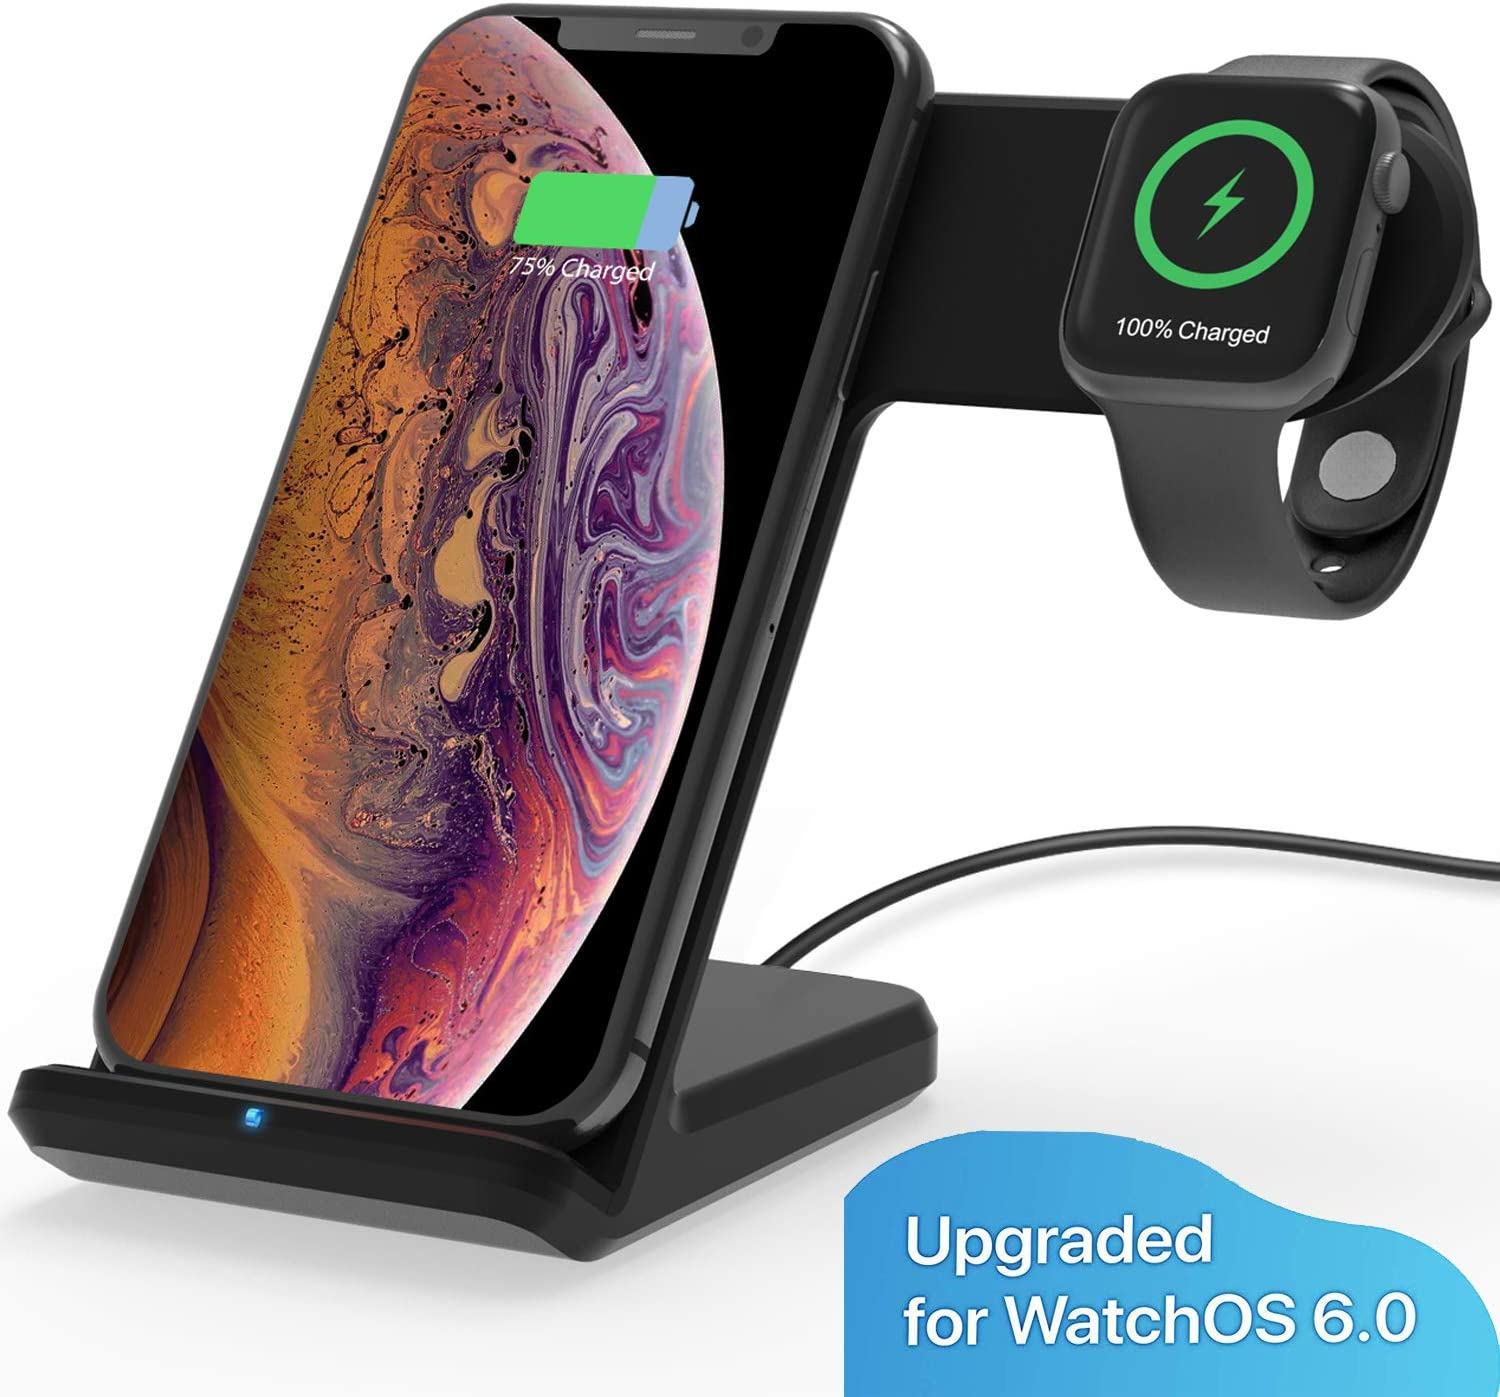 MQOUNY Wireless Charger,2 in1 in 1 Wireless Charger Stand,Charging Station Compatible with iWatch Series 5/4/3/2/1,Fast Wireless Charger Compatible ...